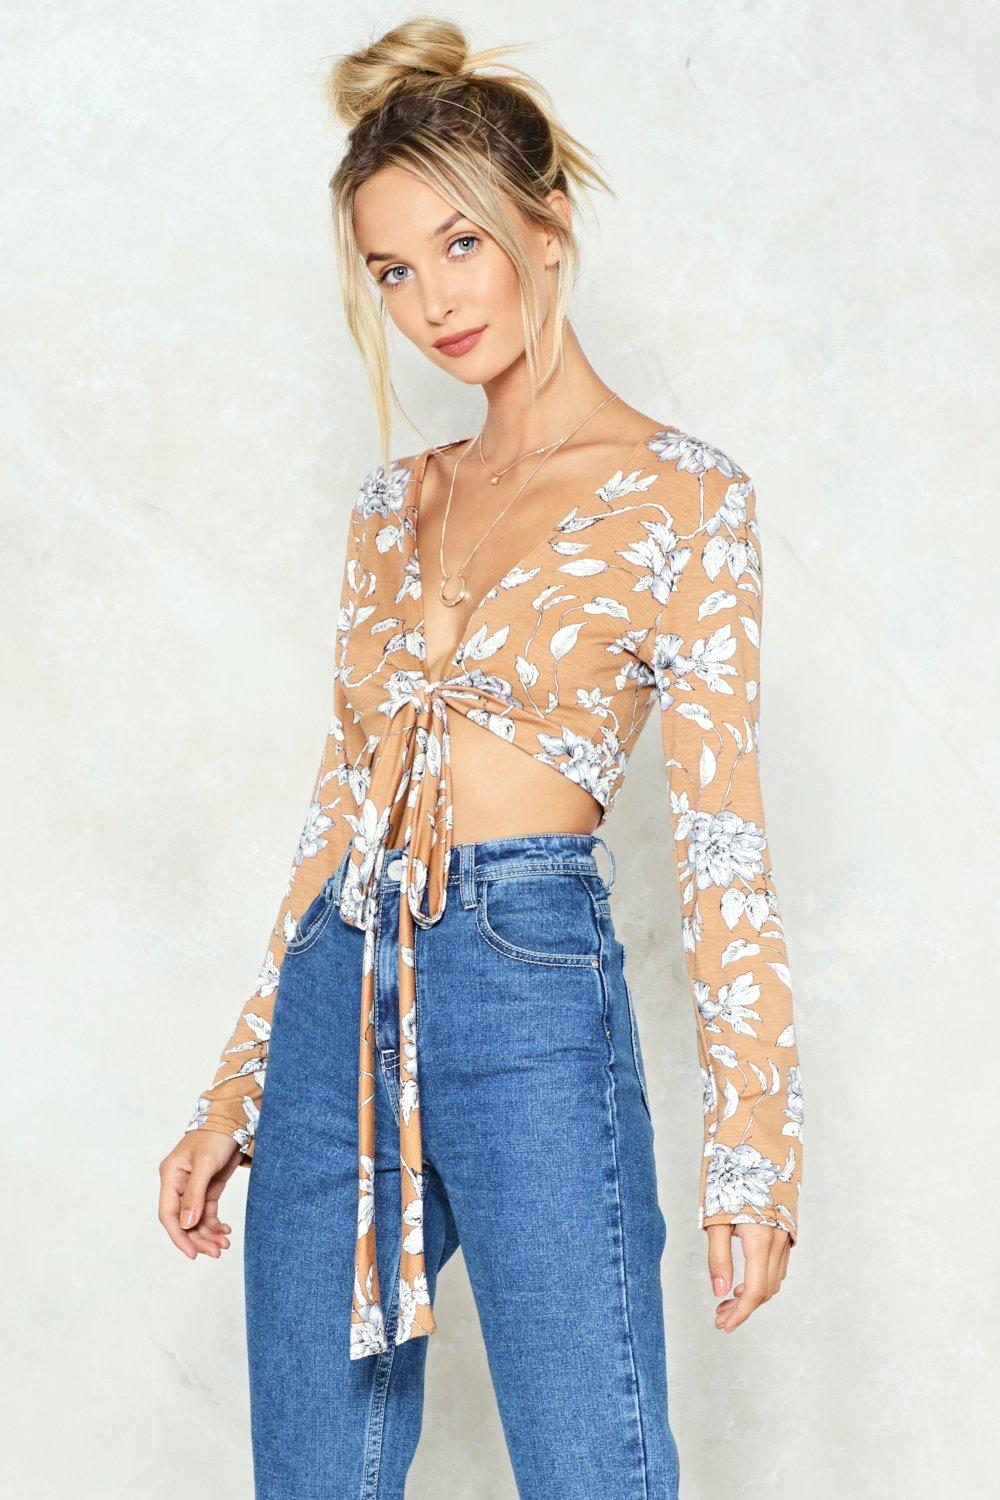 Knot Possible Floral Crop Top Shop Clothes At Nasty Gal